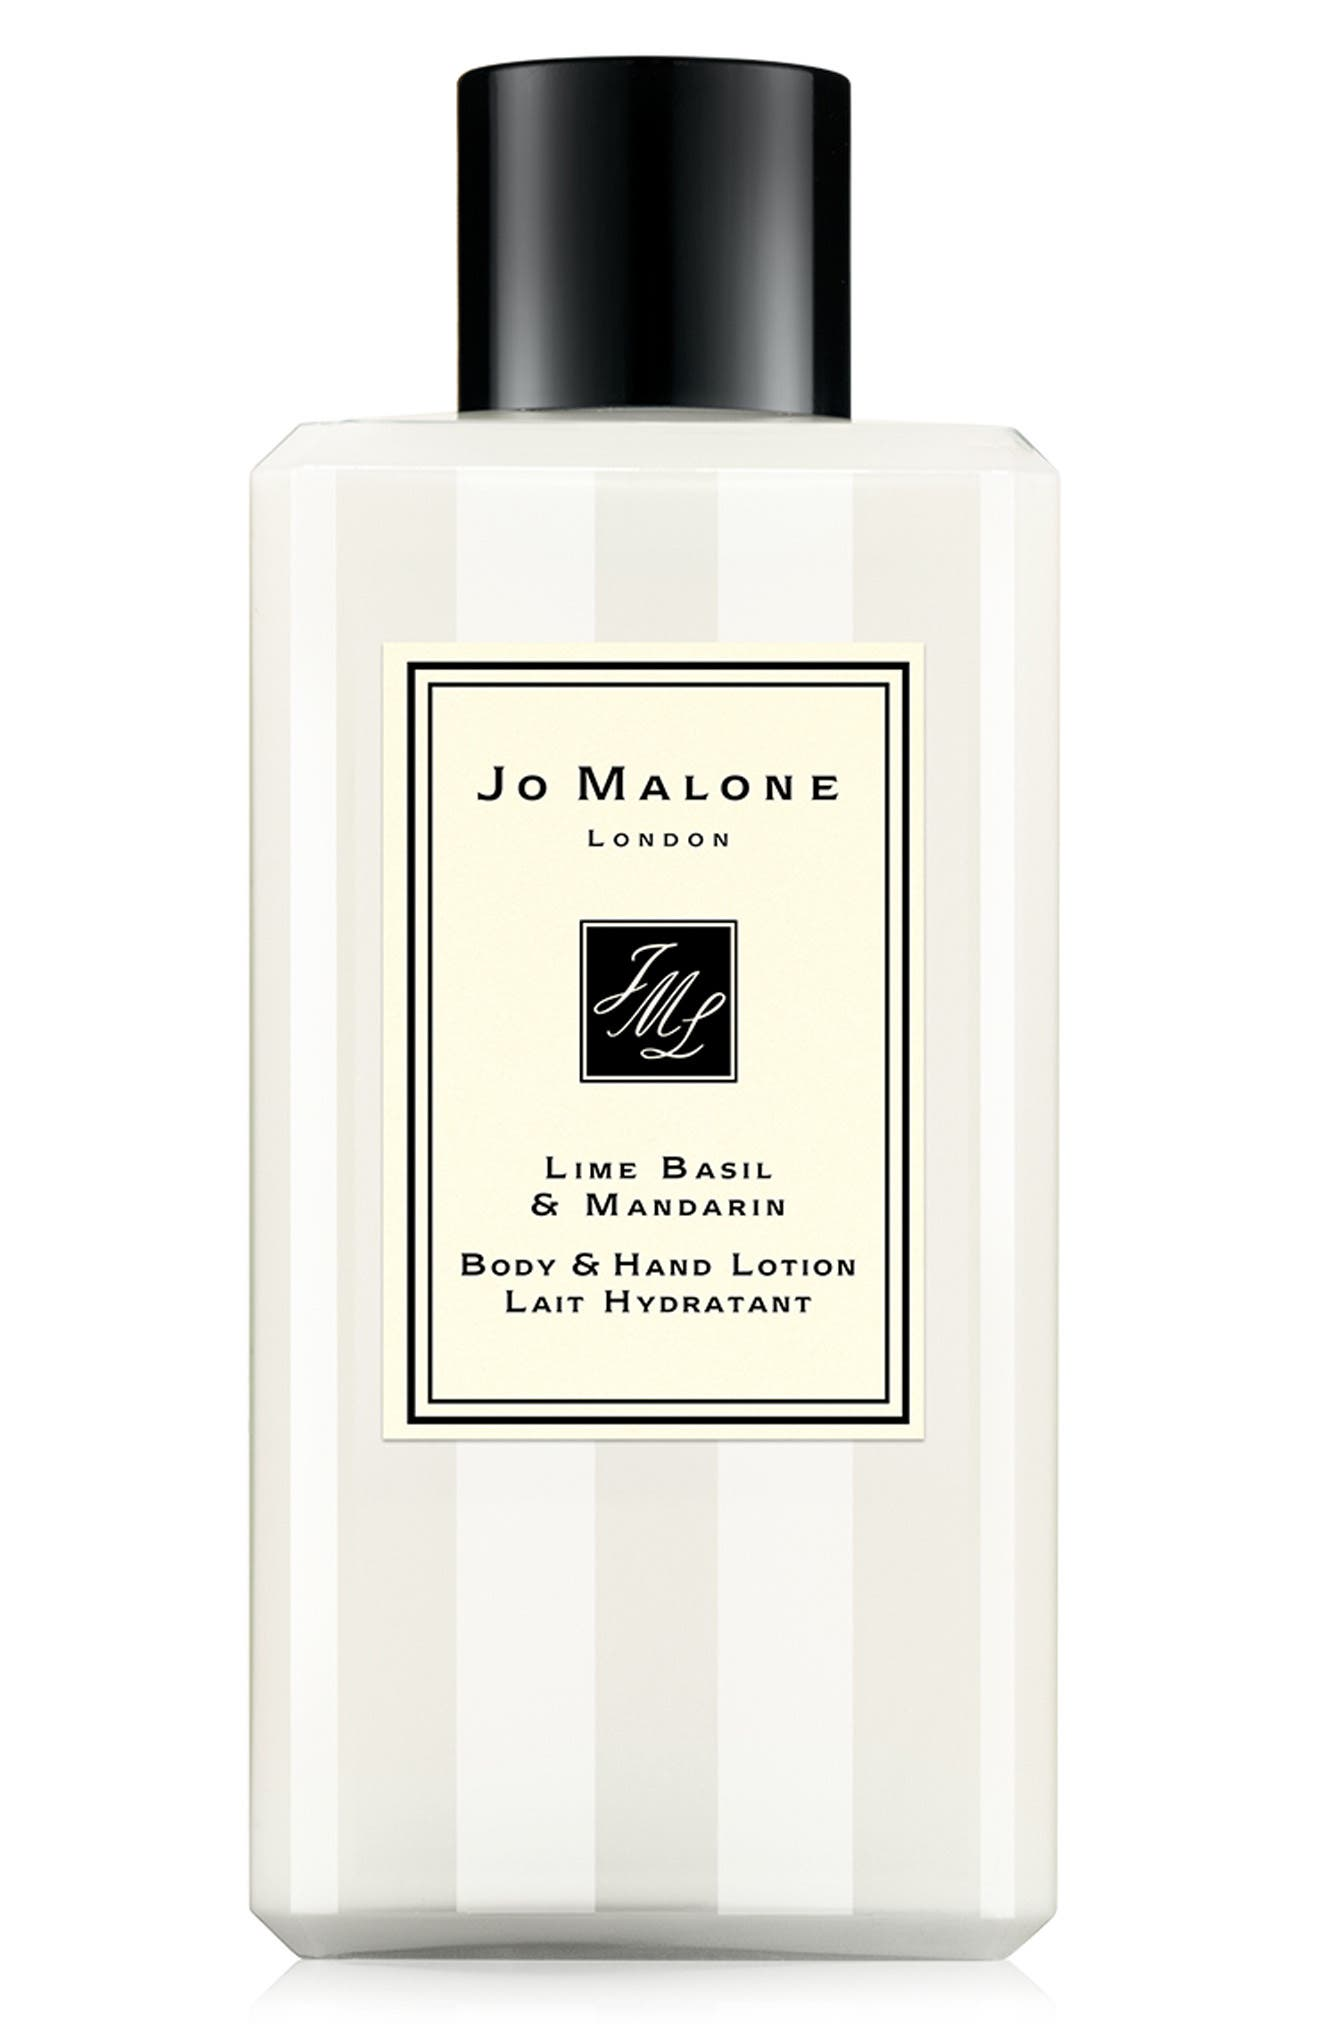 JO MALONE LONDON™ 'Lime Basil & Mandarin' Body